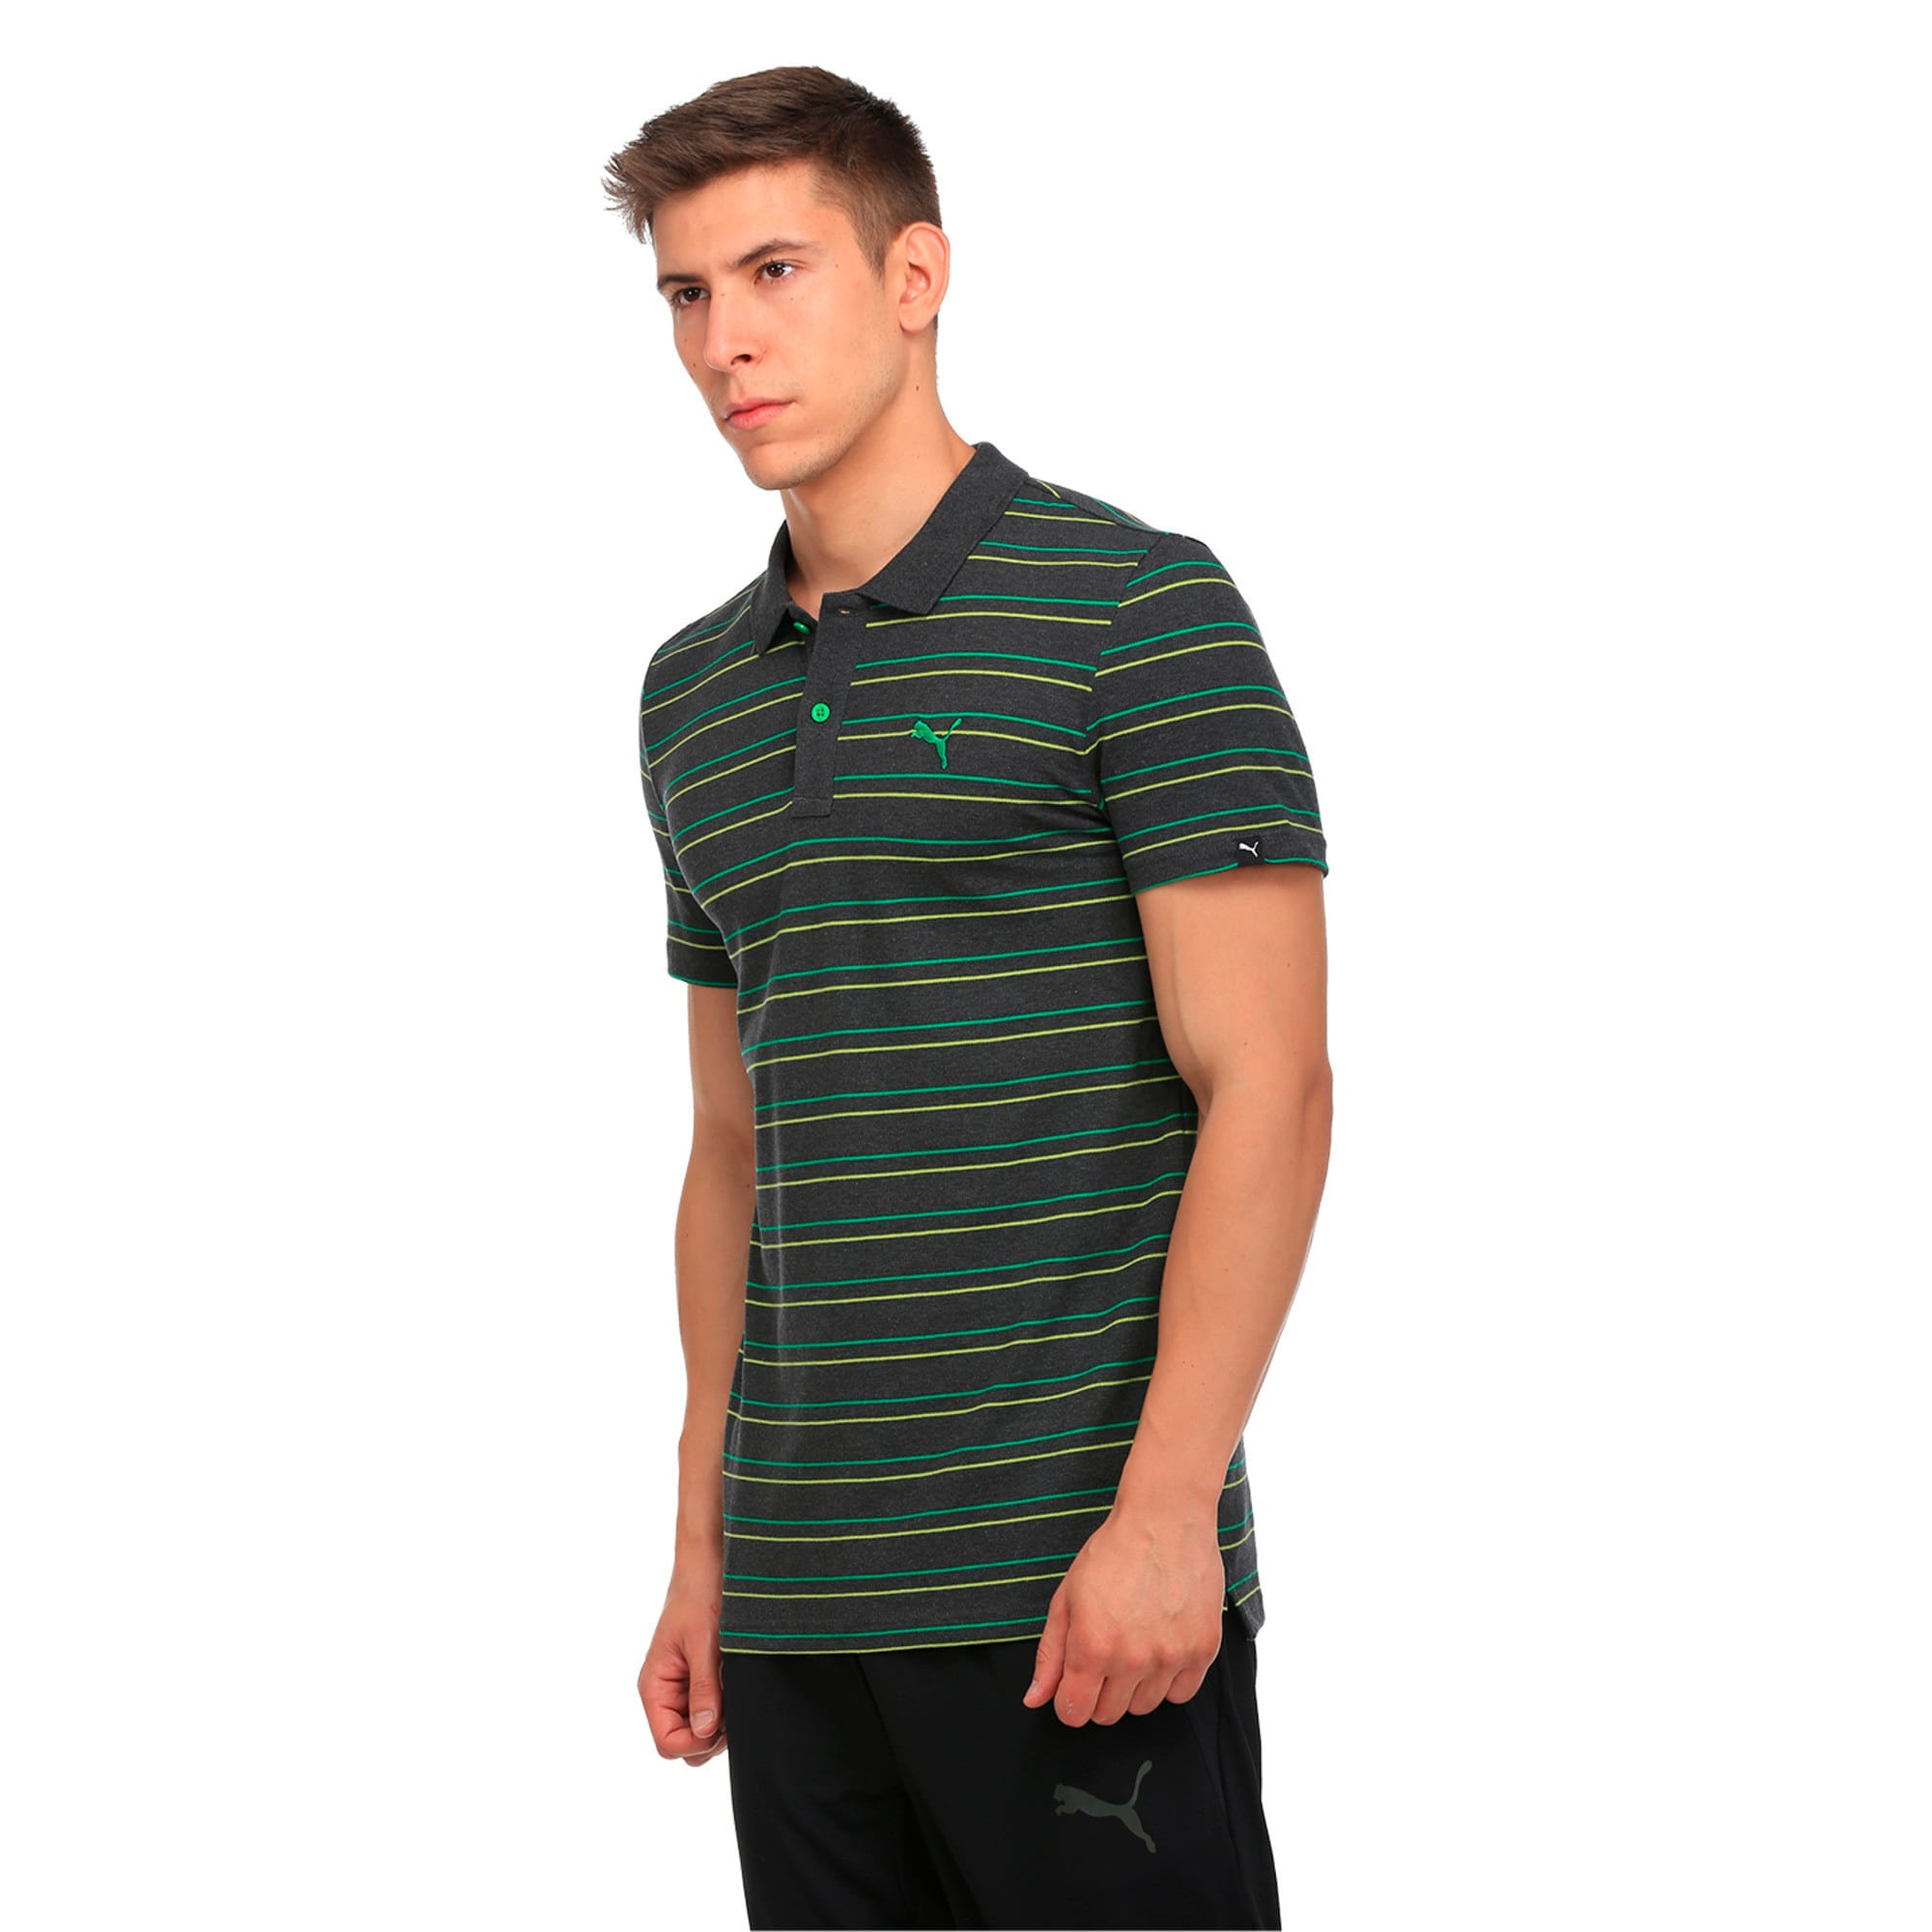 Thumbnail 2 of Sports Stripe Pique Polo, Dark Gray Heather, medium-IND